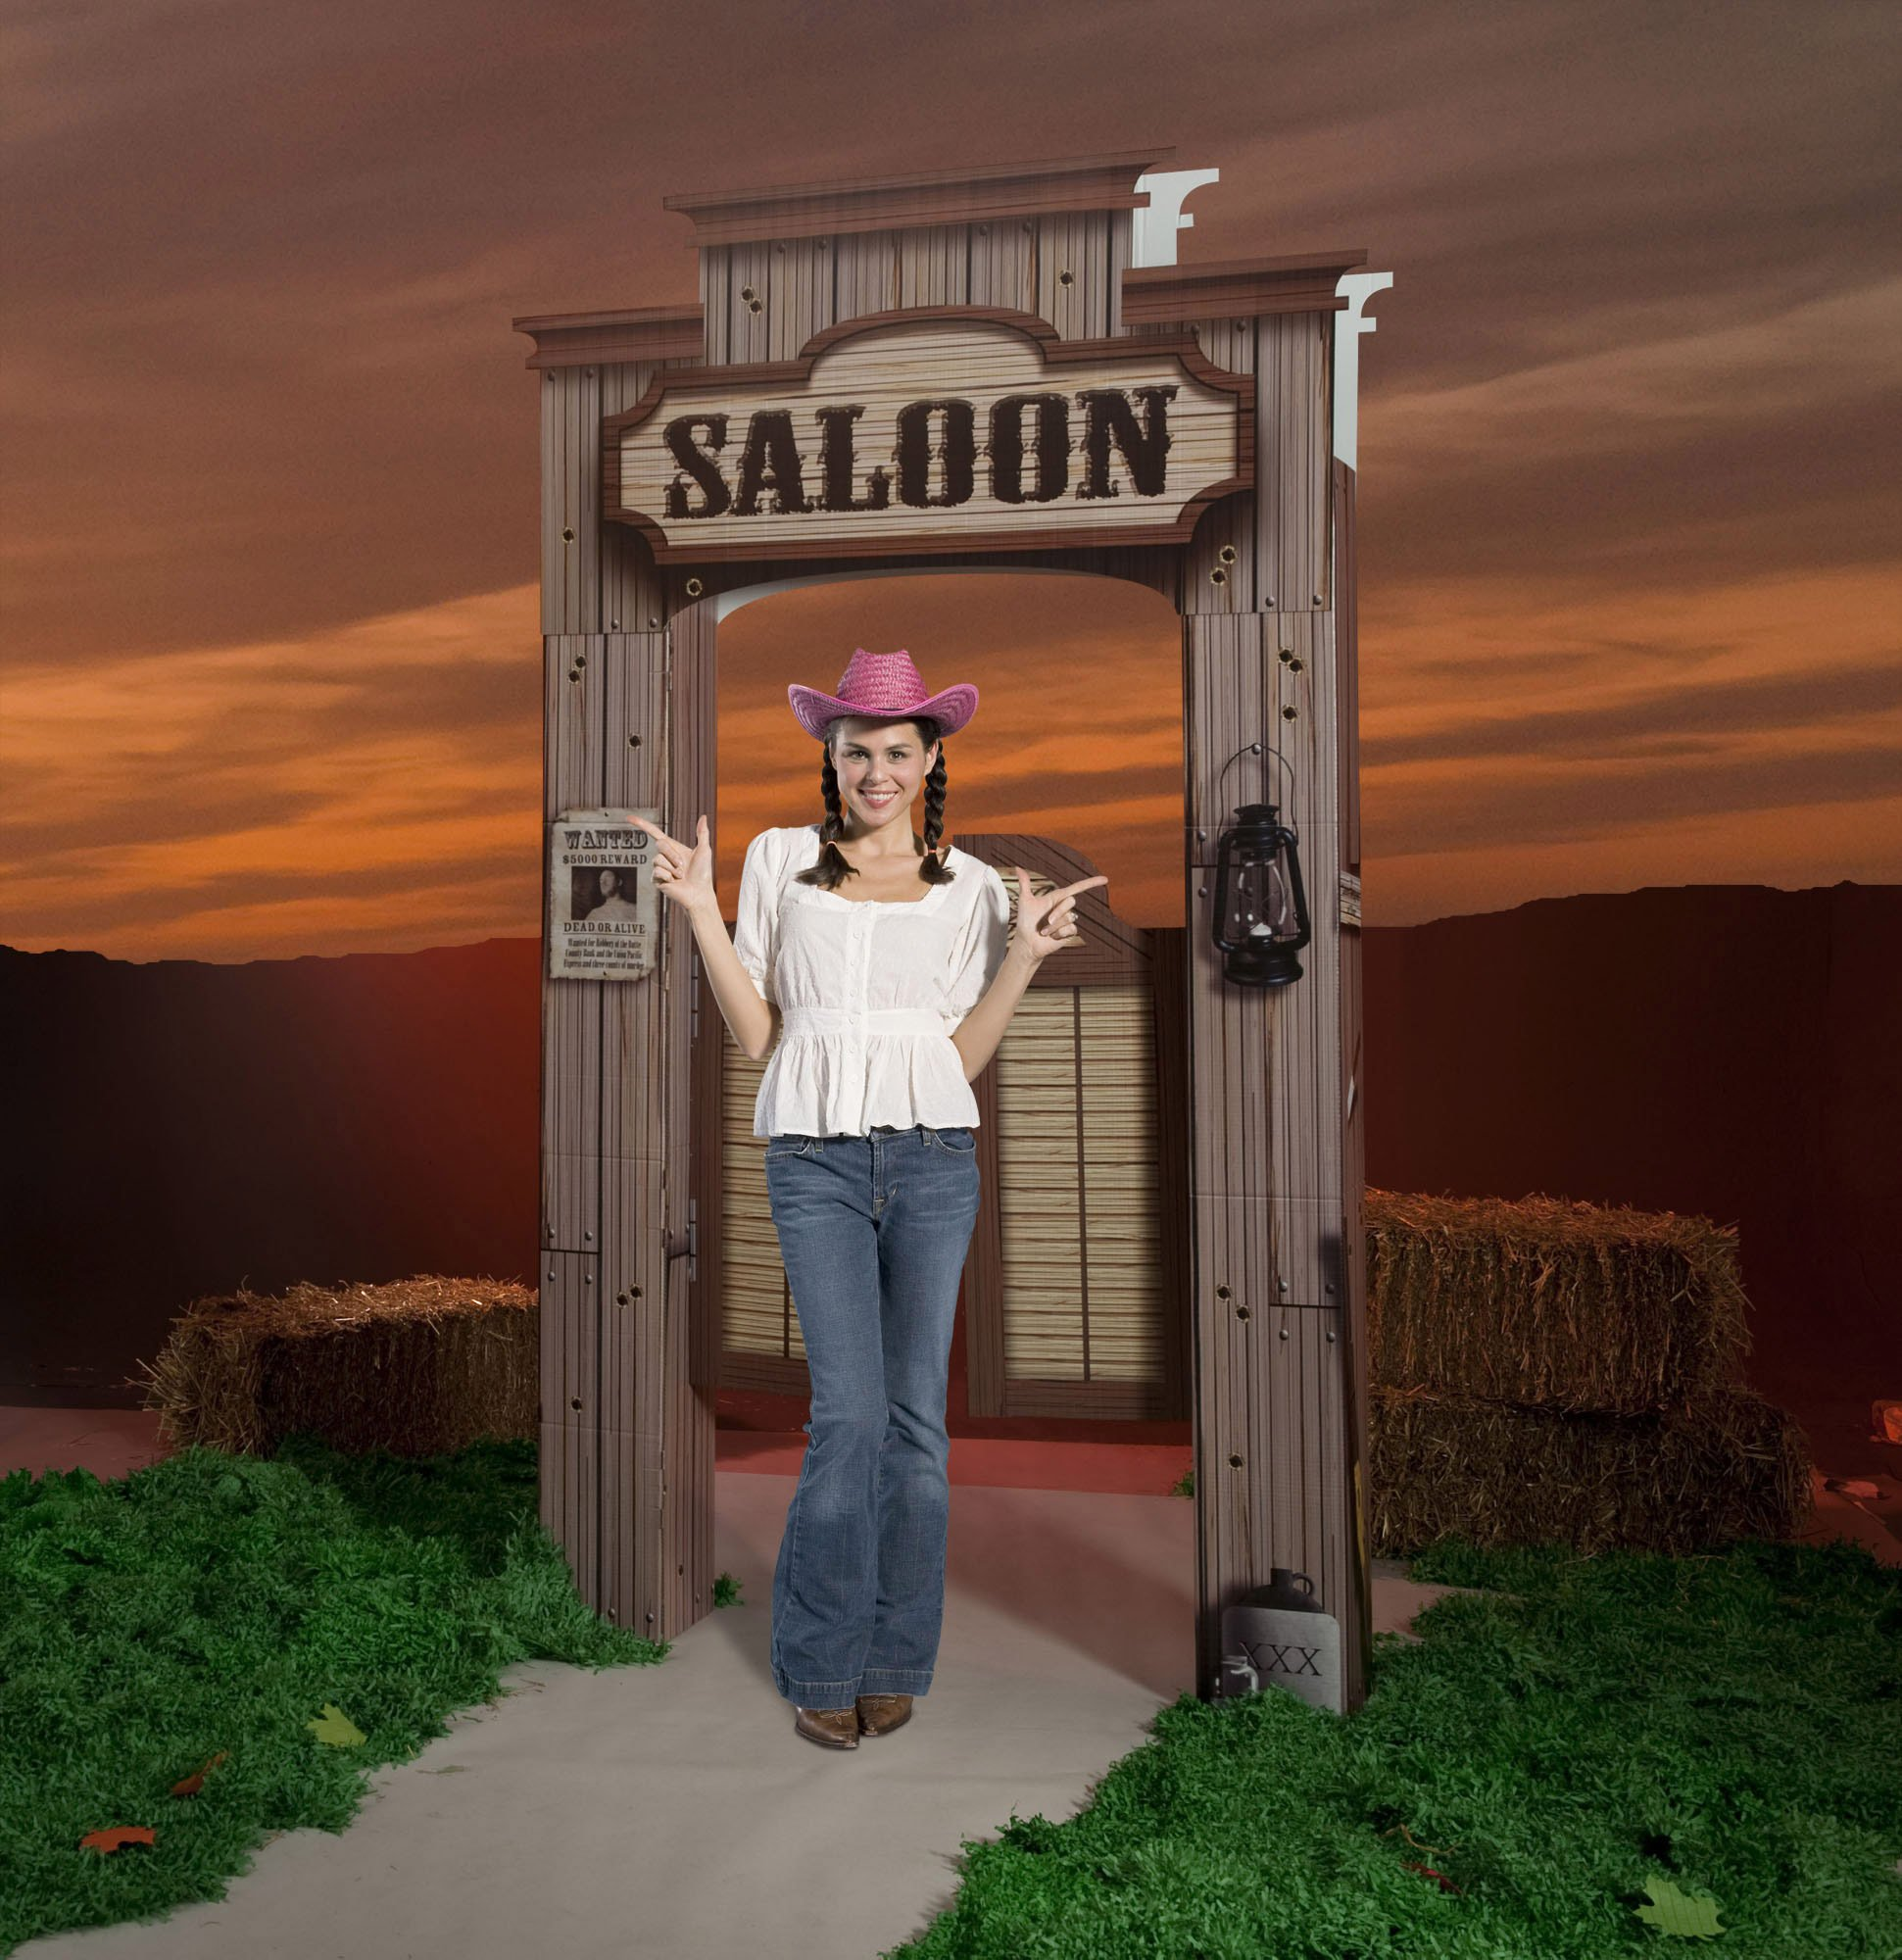 Saloon Entrance Party Prop by Shindigz